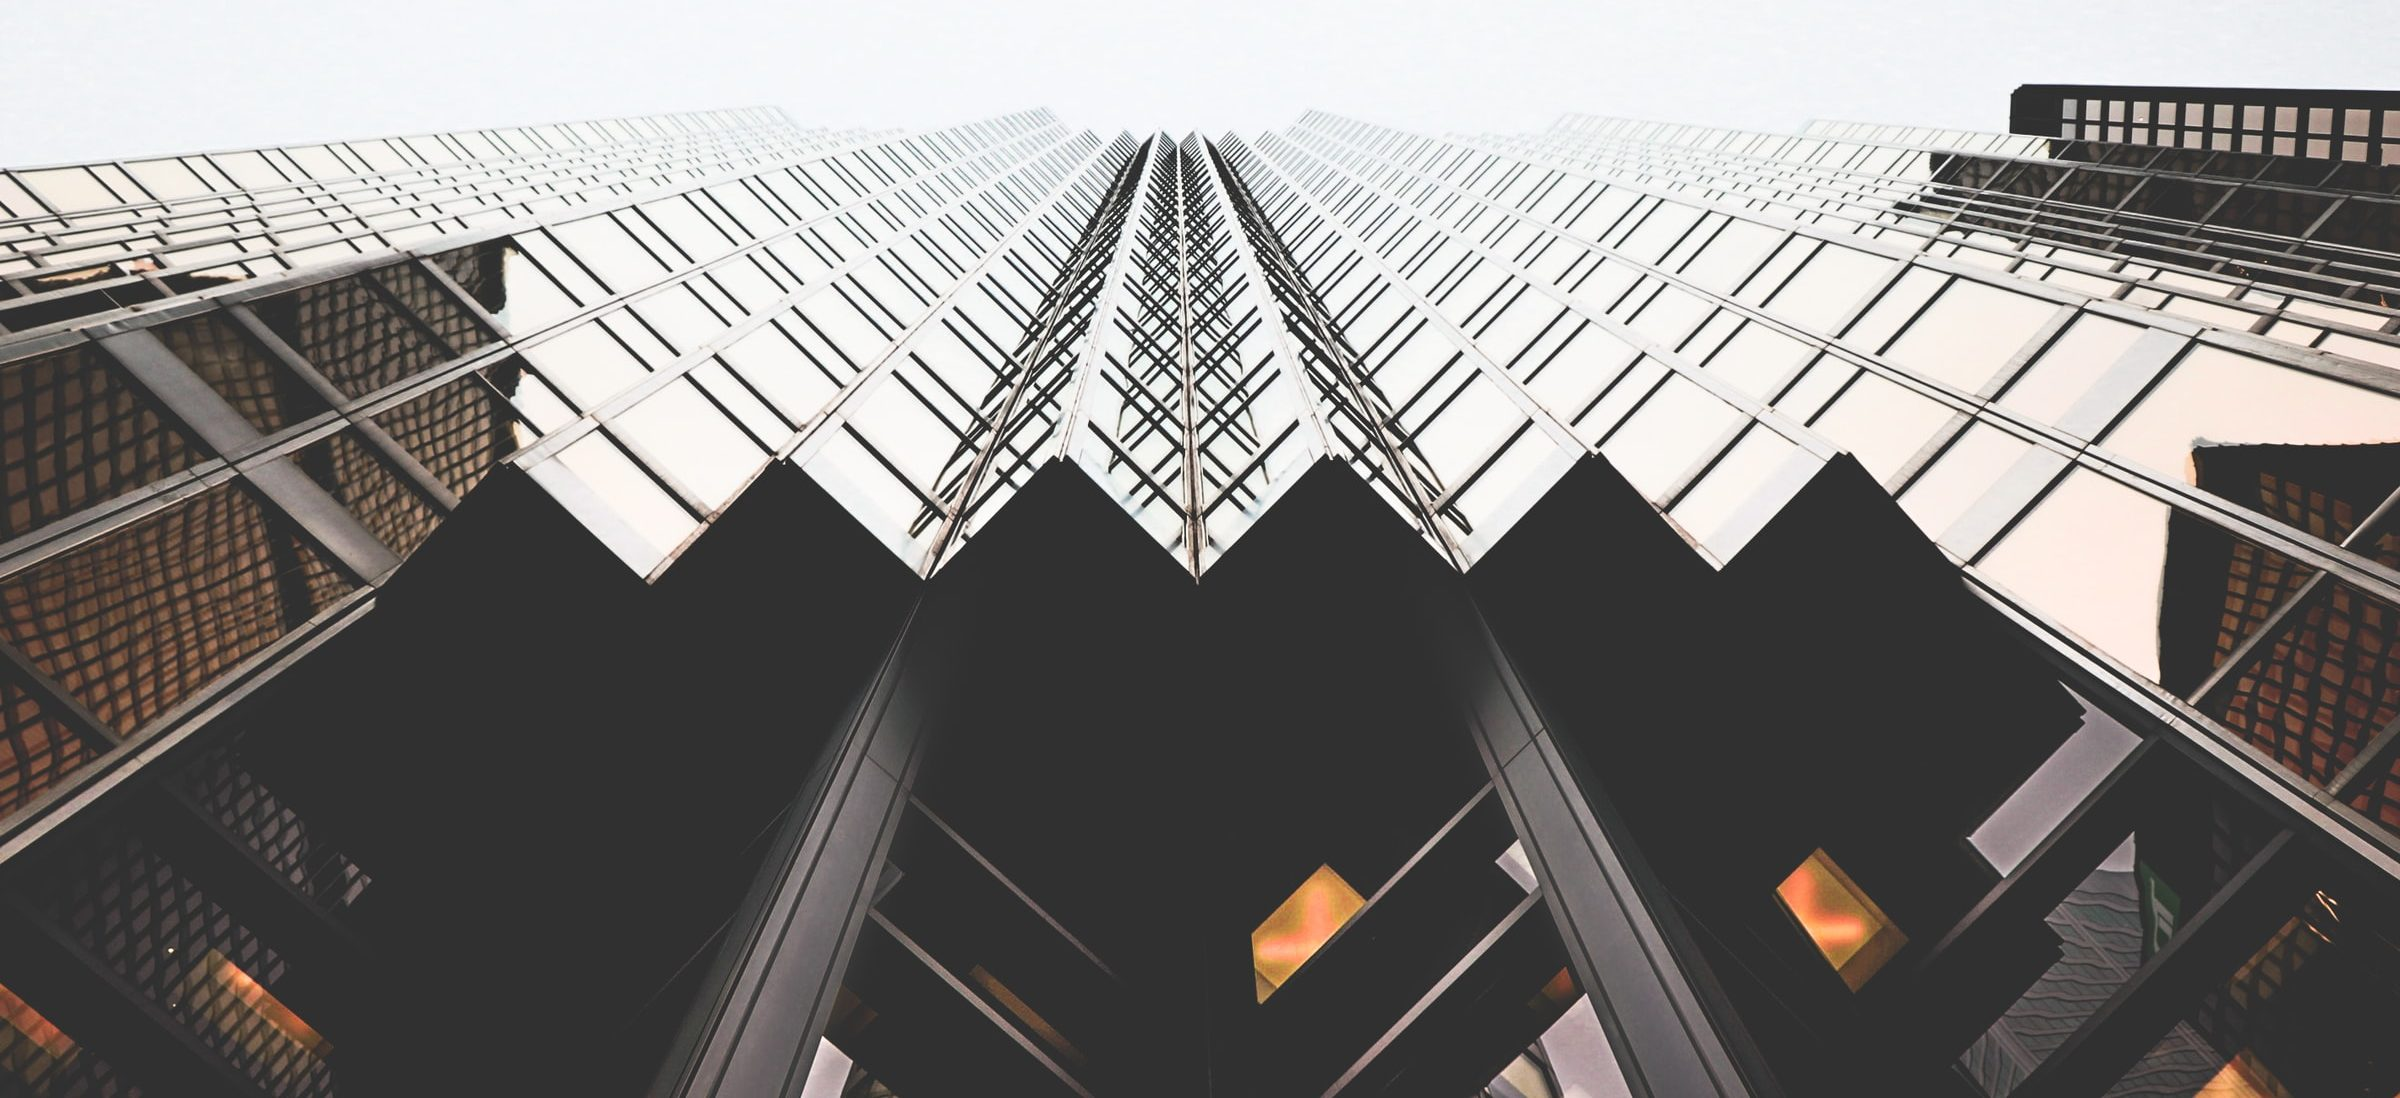 Looking up at the RBC Building